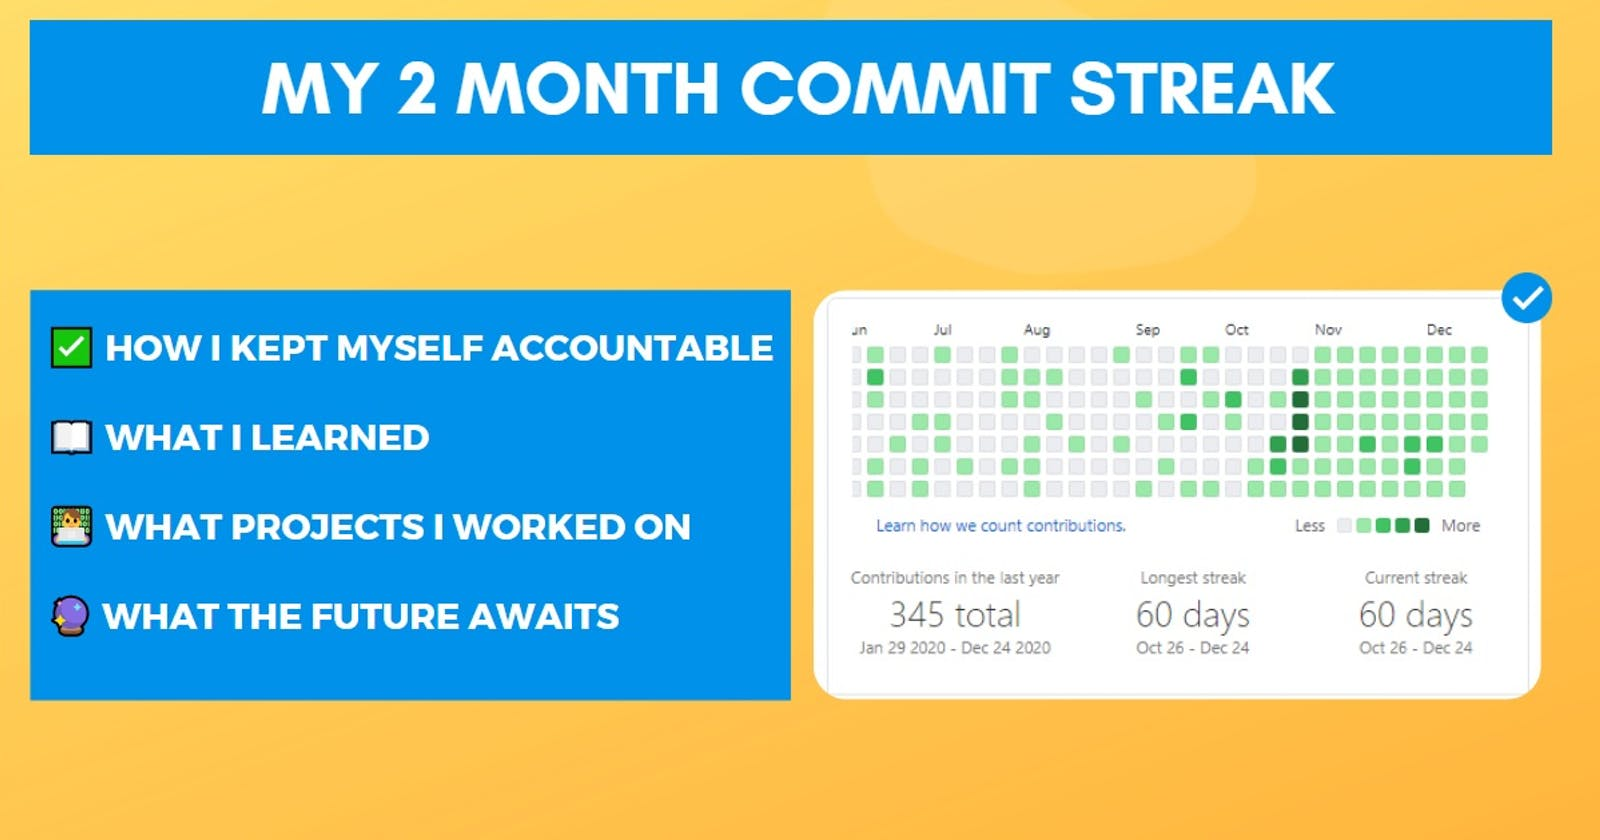 My 2 Month Commit Streak so far (What I learned)